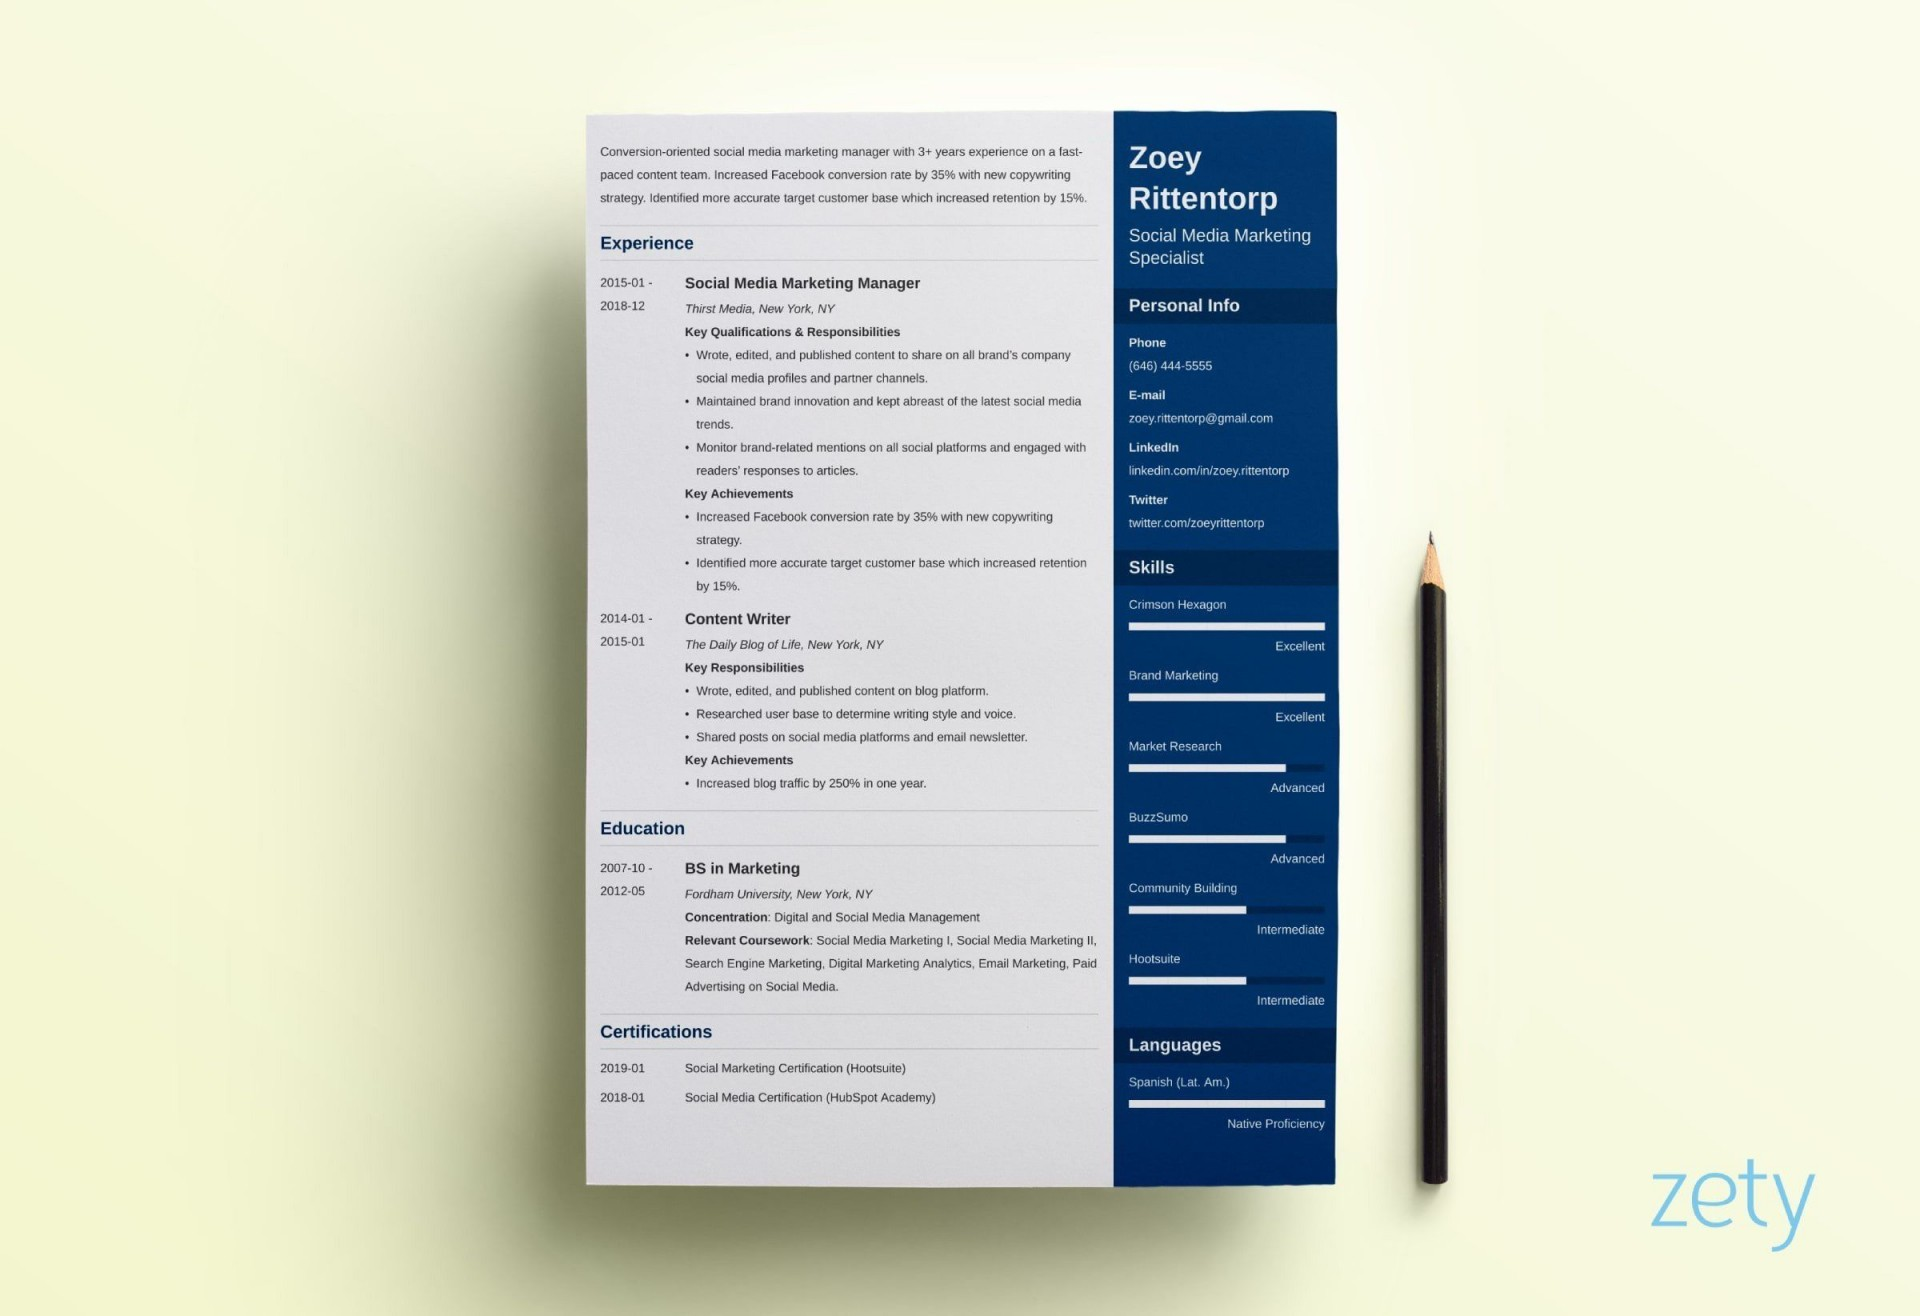 009 Impressive Free Student Resume Template Download Image  Word1920